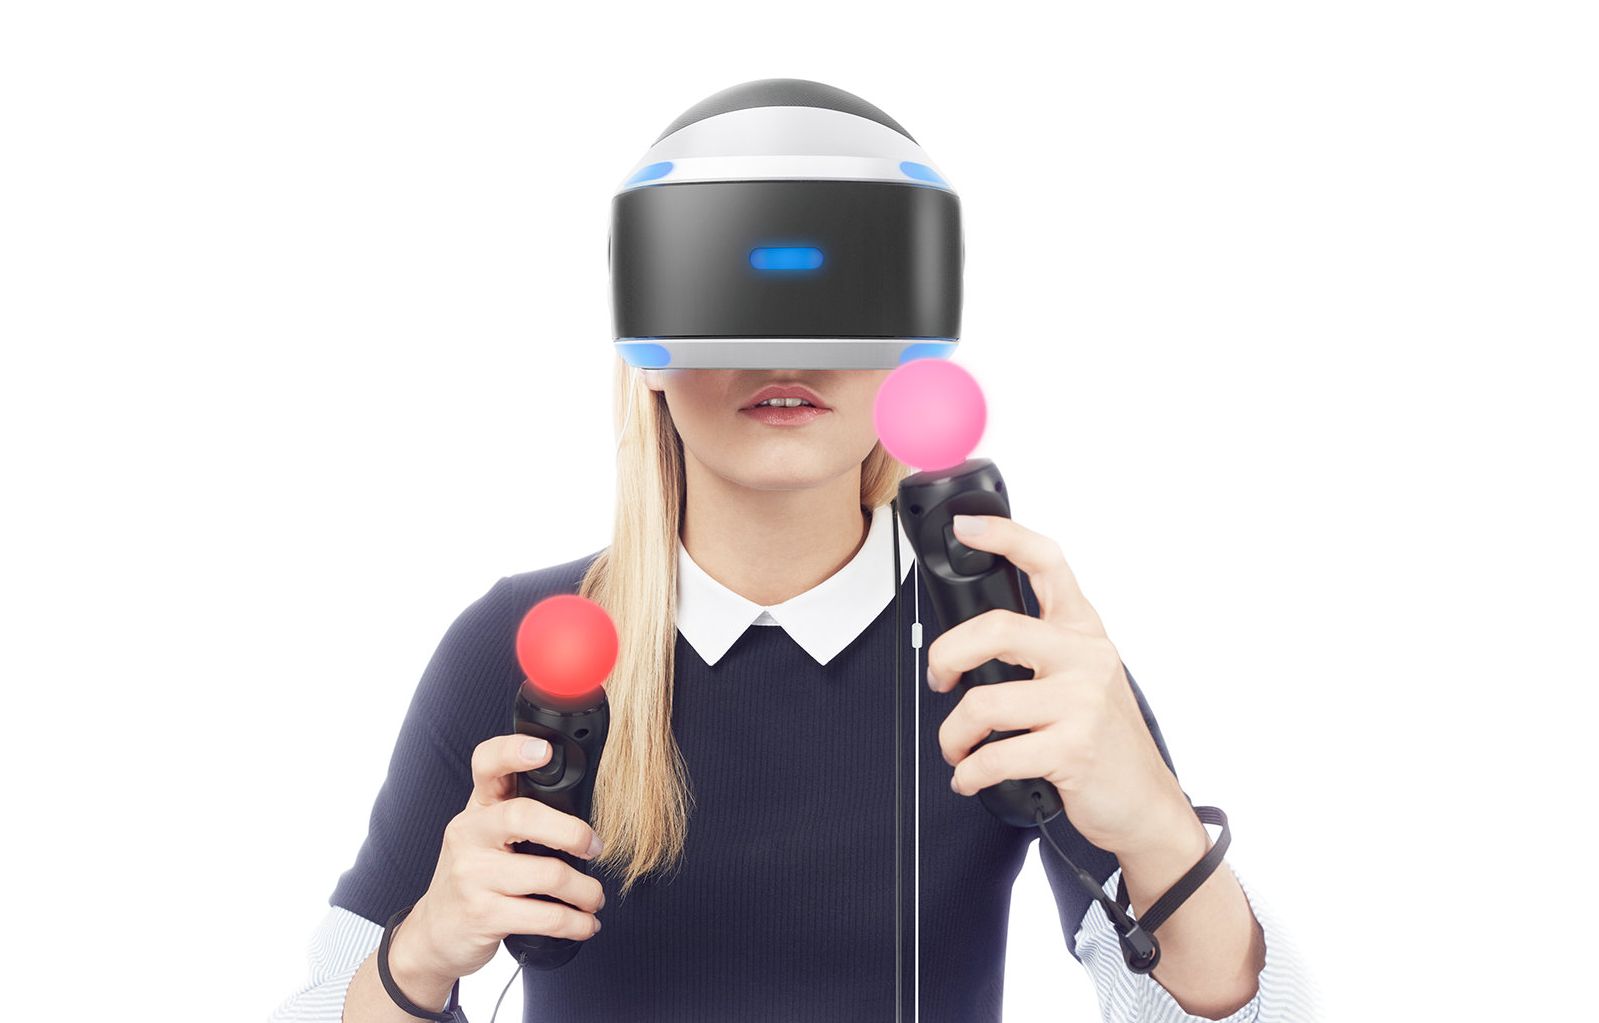 PlayStation VR Review: Bringing Virtual Reality To The Mainstream